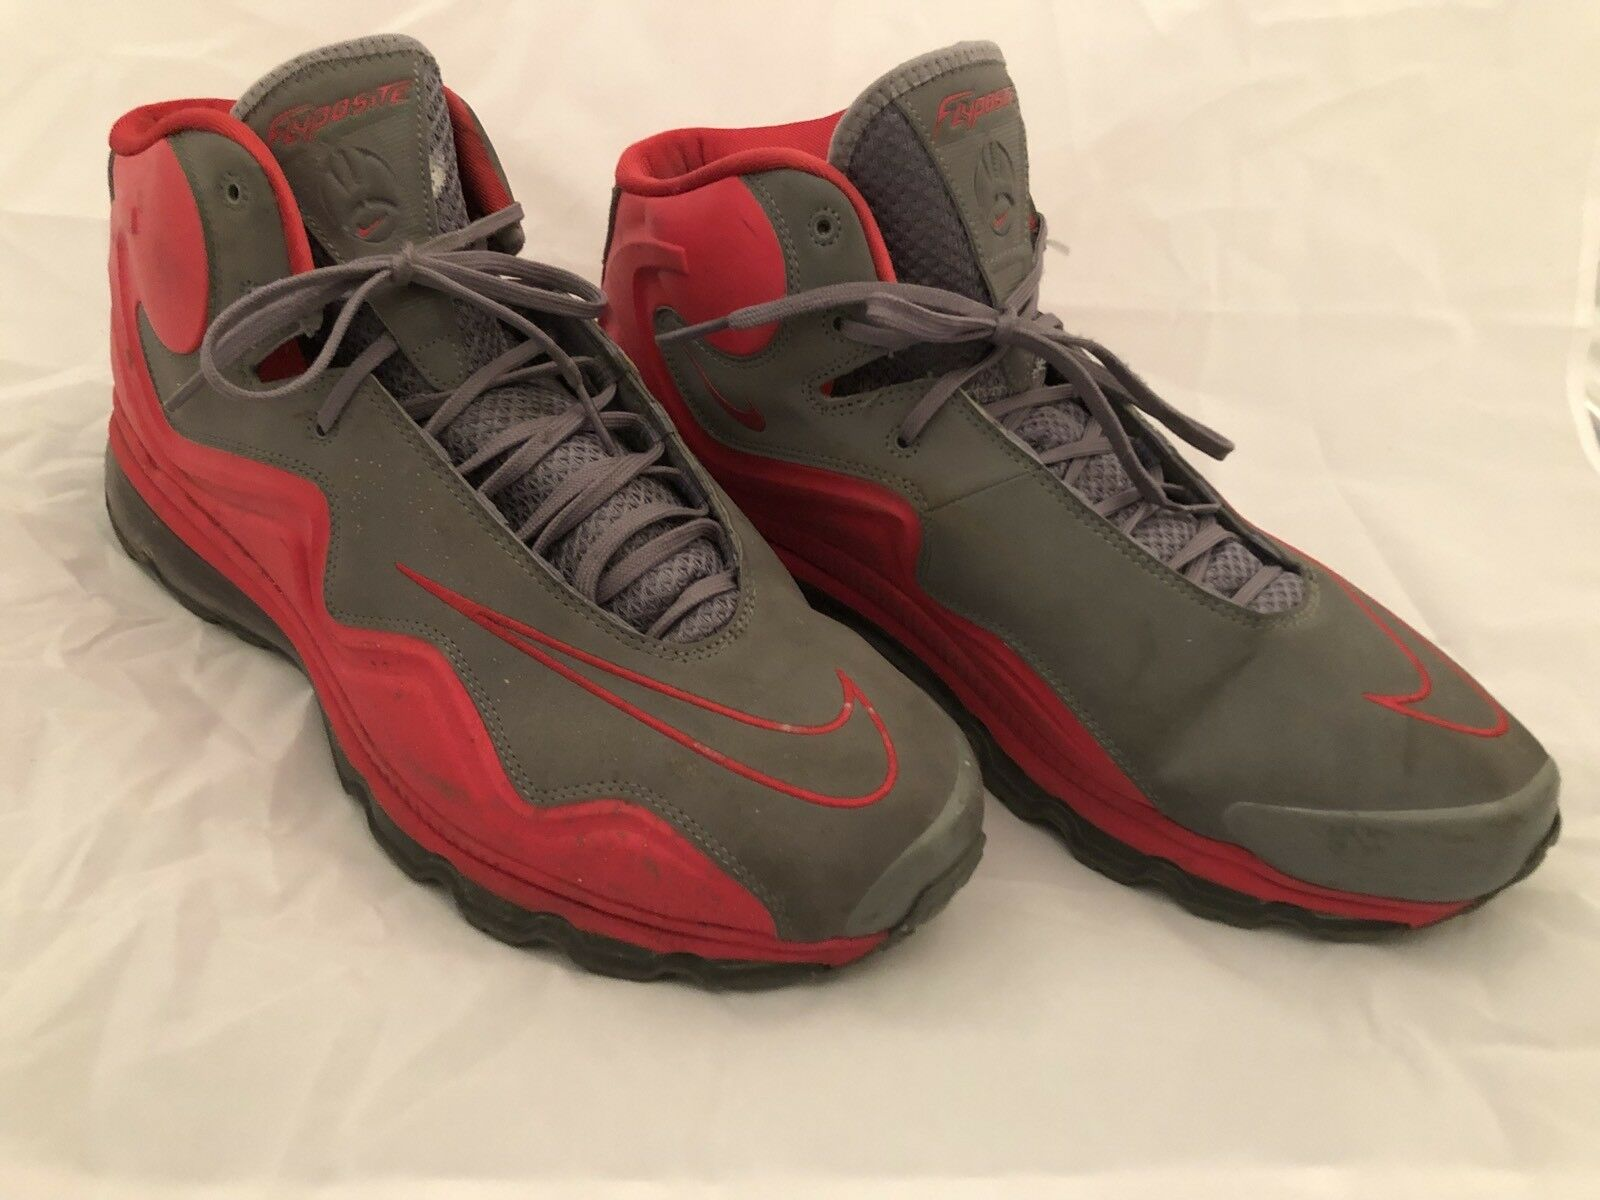 nike taille 15 15 15 hommes gris rouge air flyposite hyper cool 1ab8e6